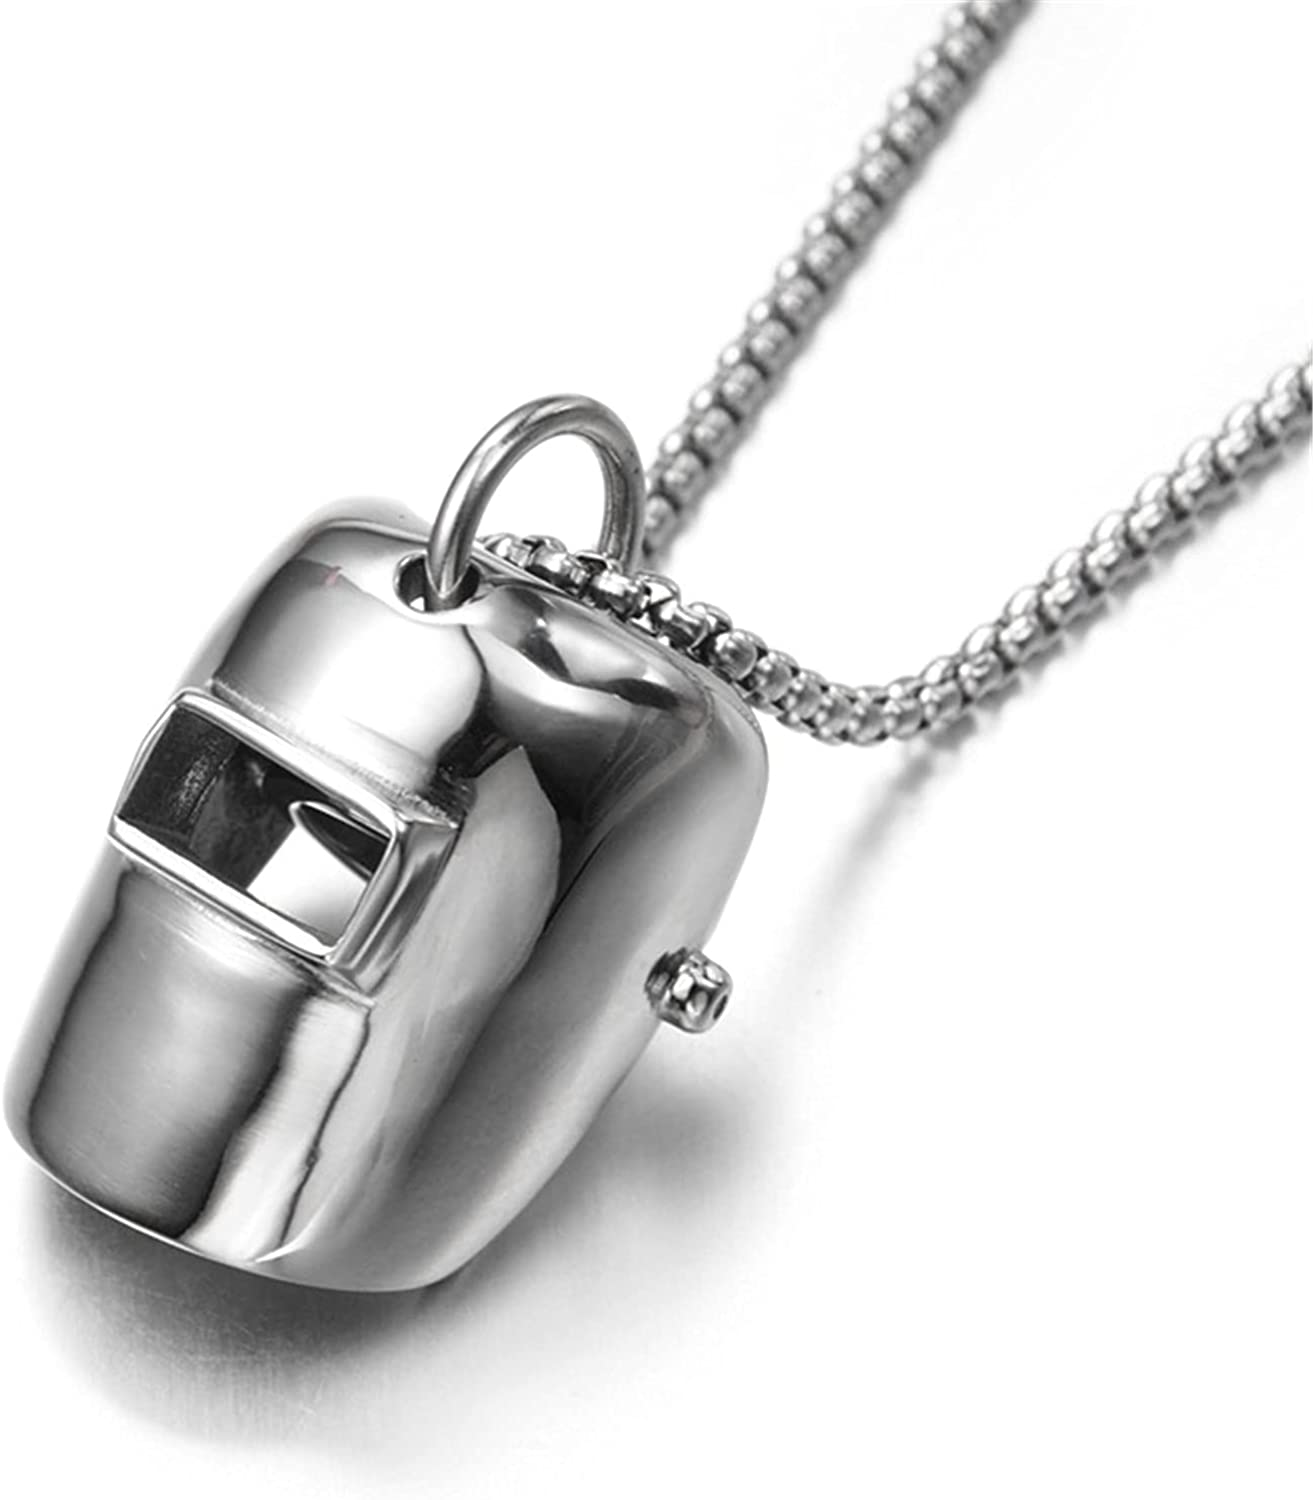 Hiphop Classic Welder Mask Pendant Necklaces for Welding Artisan Fashion Jewelry 27.5